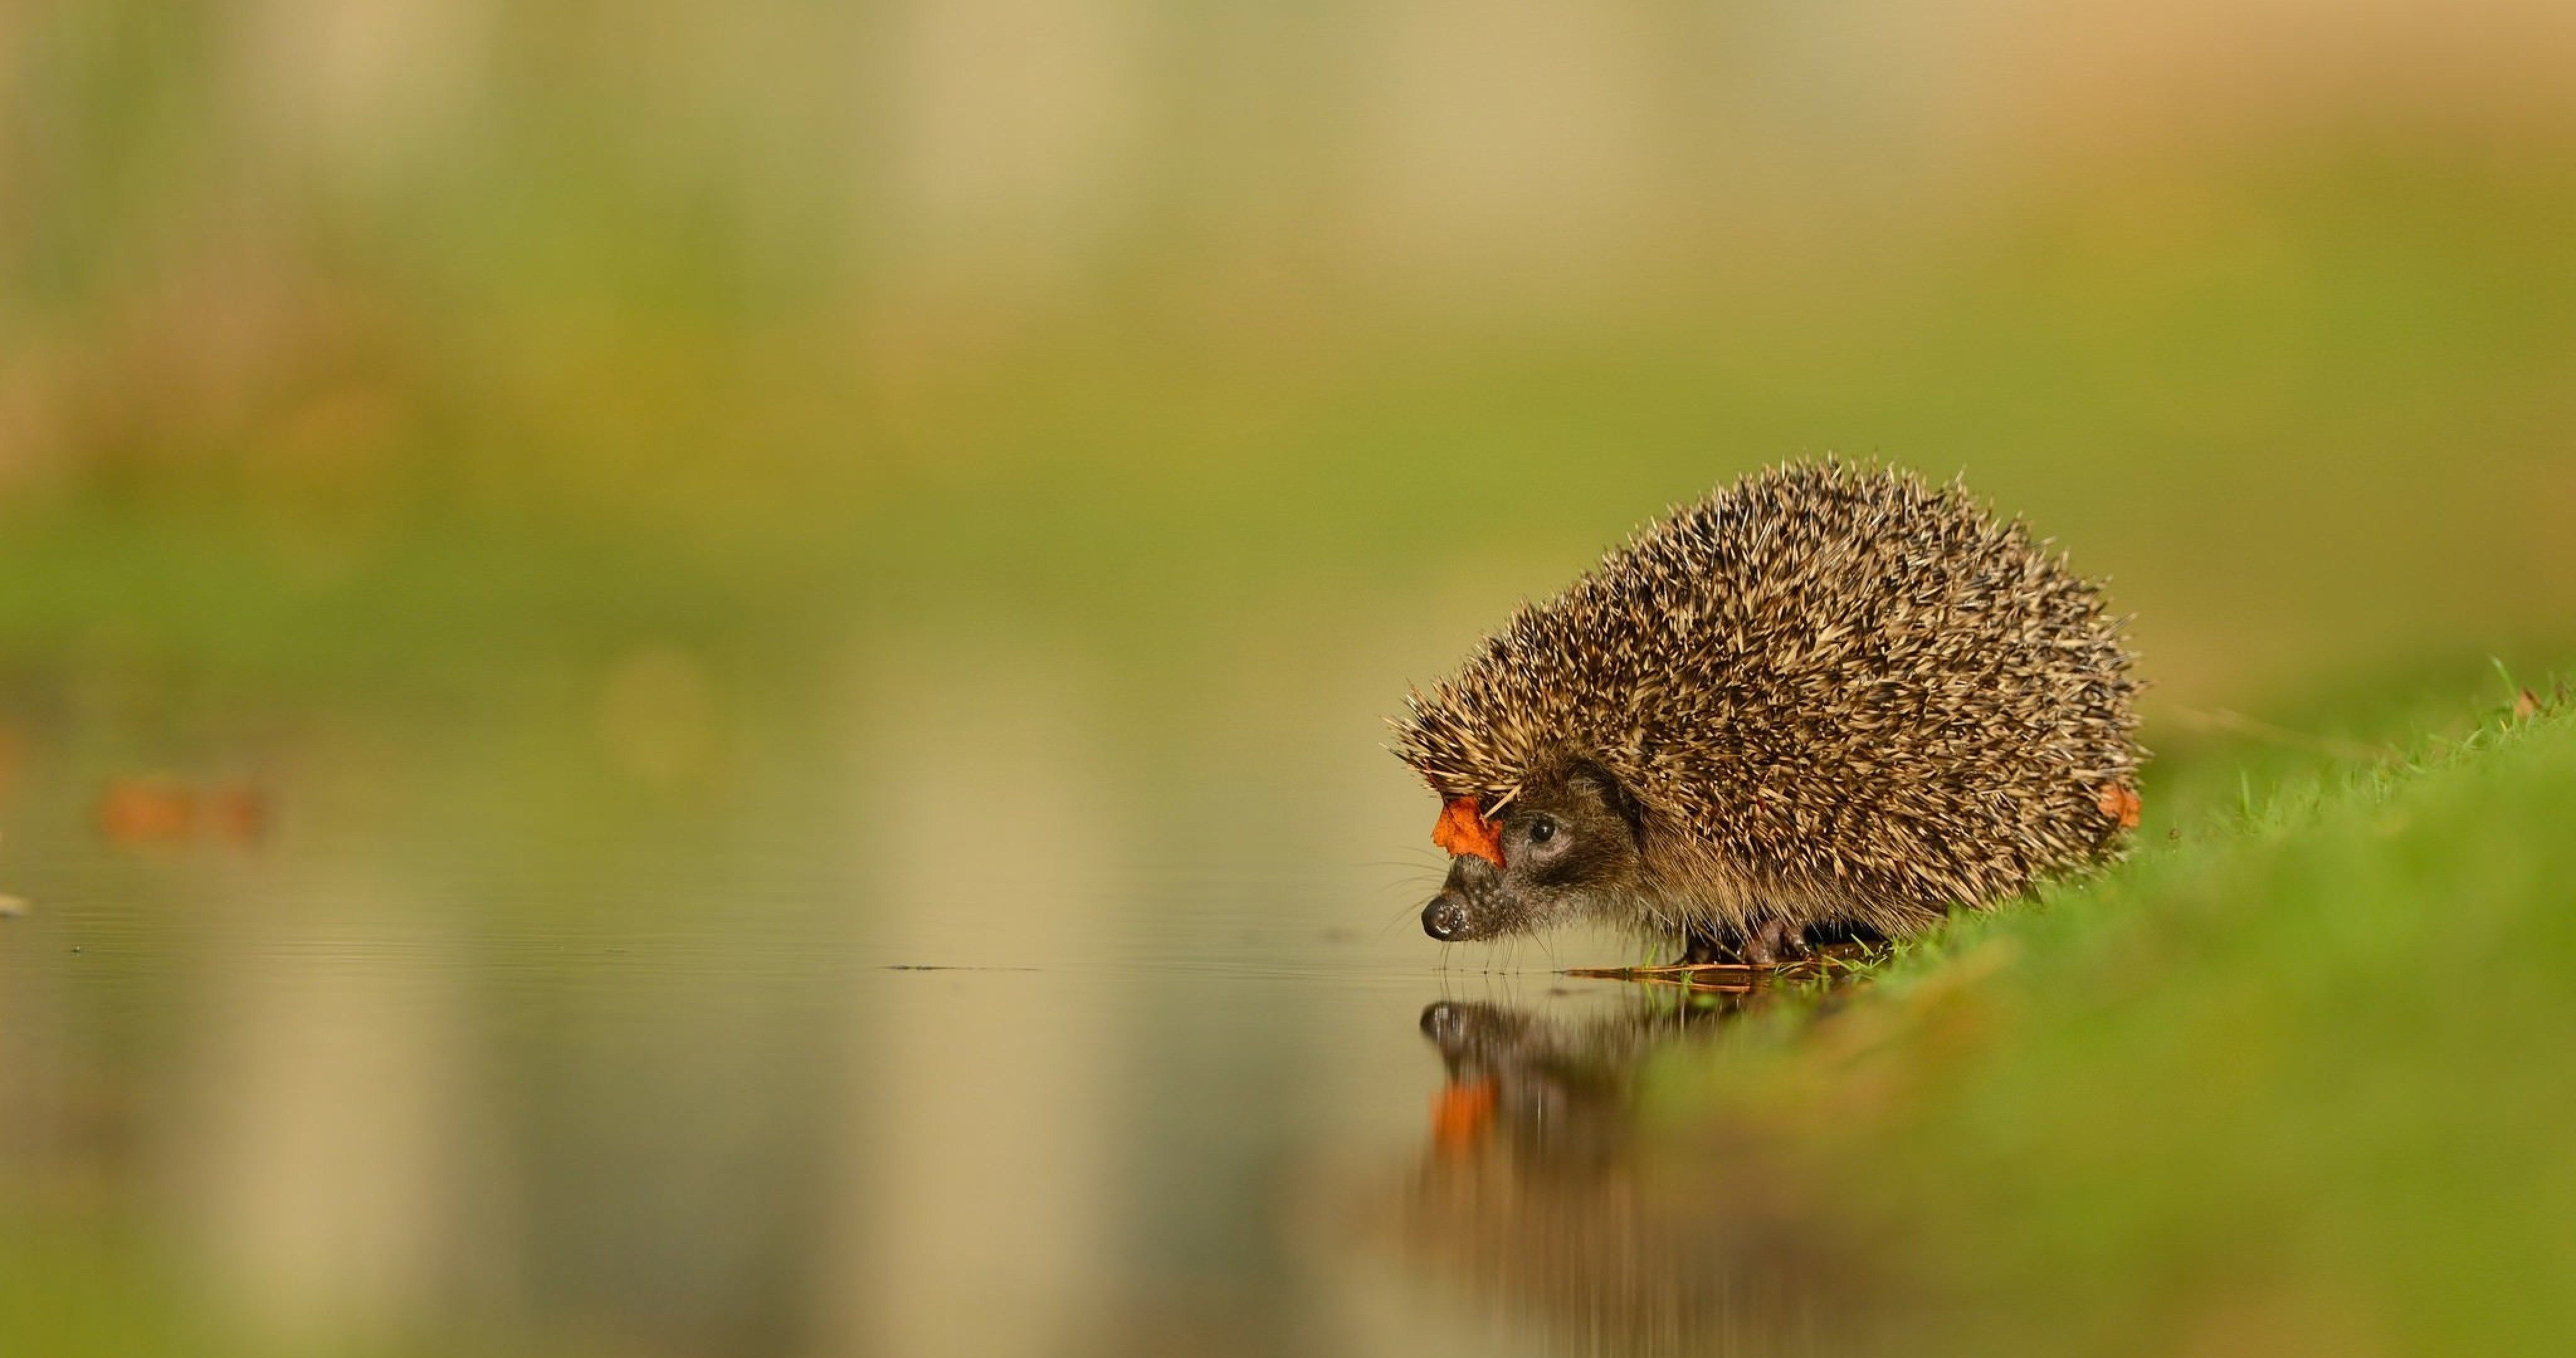 Hedgehog And Water 4k Ultra Hd Wallpaper Animals Animal Wallpaper Cute Hedgehog